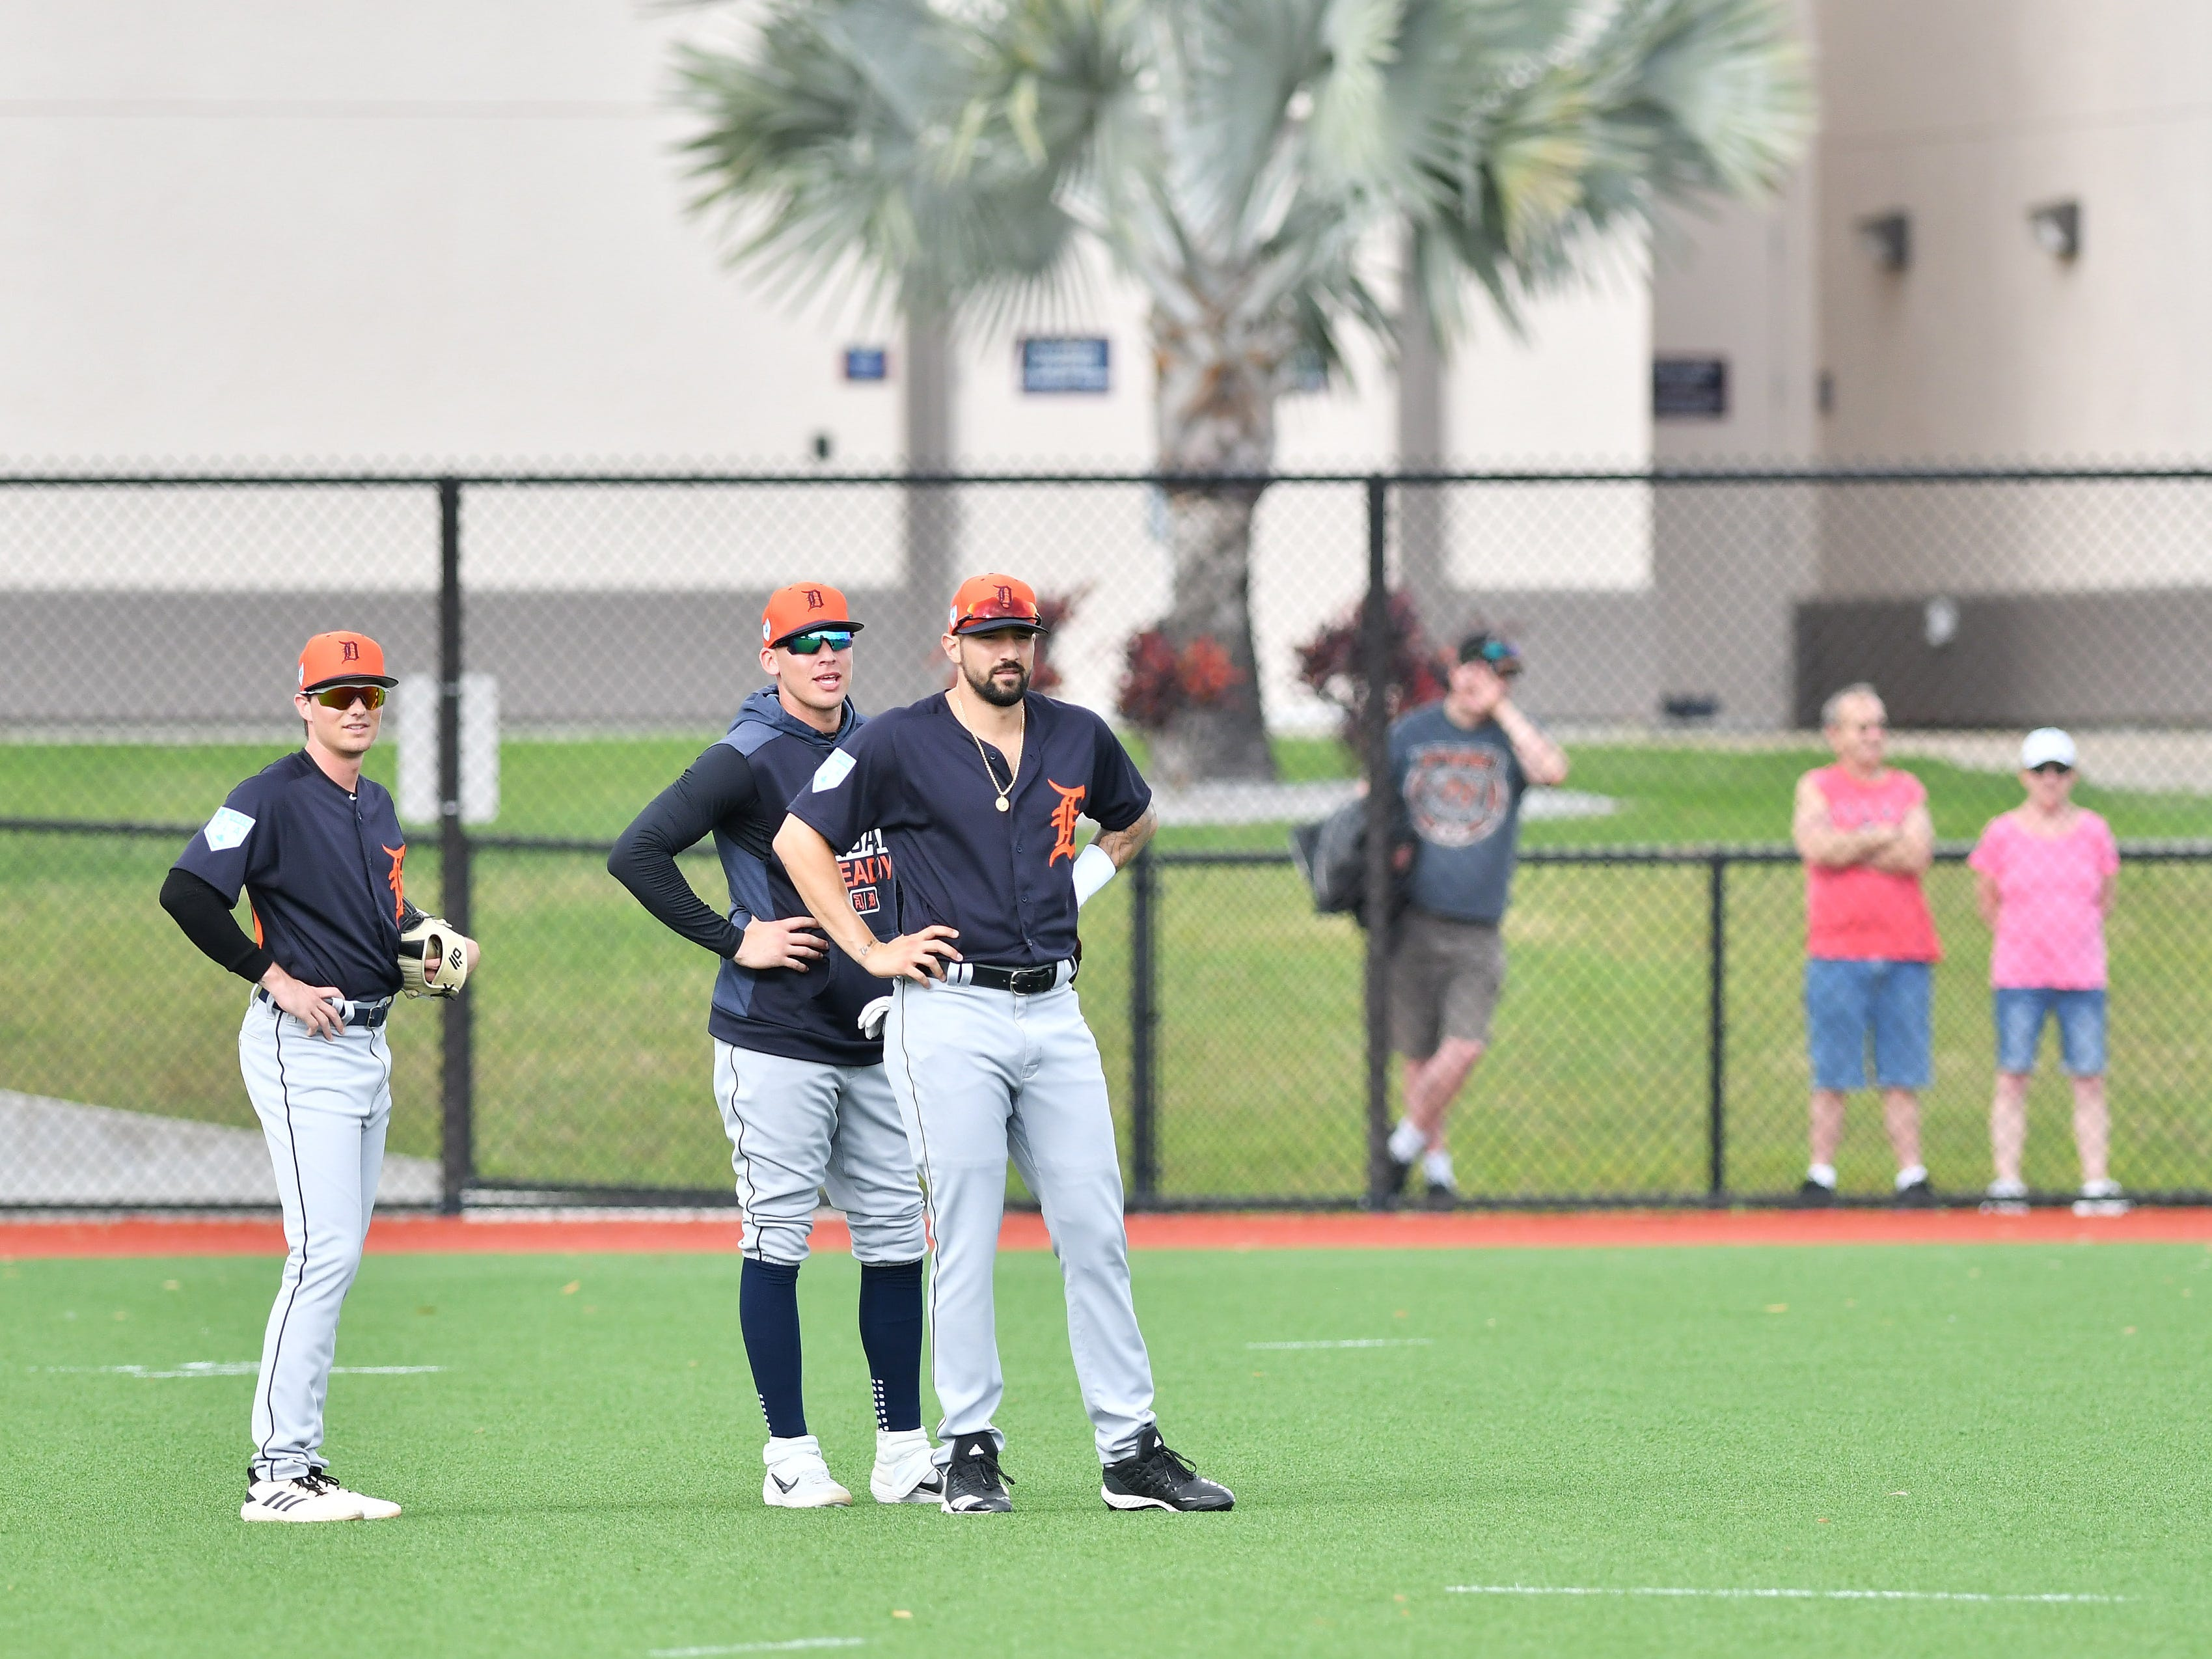 From left, non-roster invitee Danny Woodrow, and Tigers outfielders JaCoby Jones and Nick Castellanos wait for pop flies from third-base coach Dave Clark, not shown, during practice of calling for the fly ball.